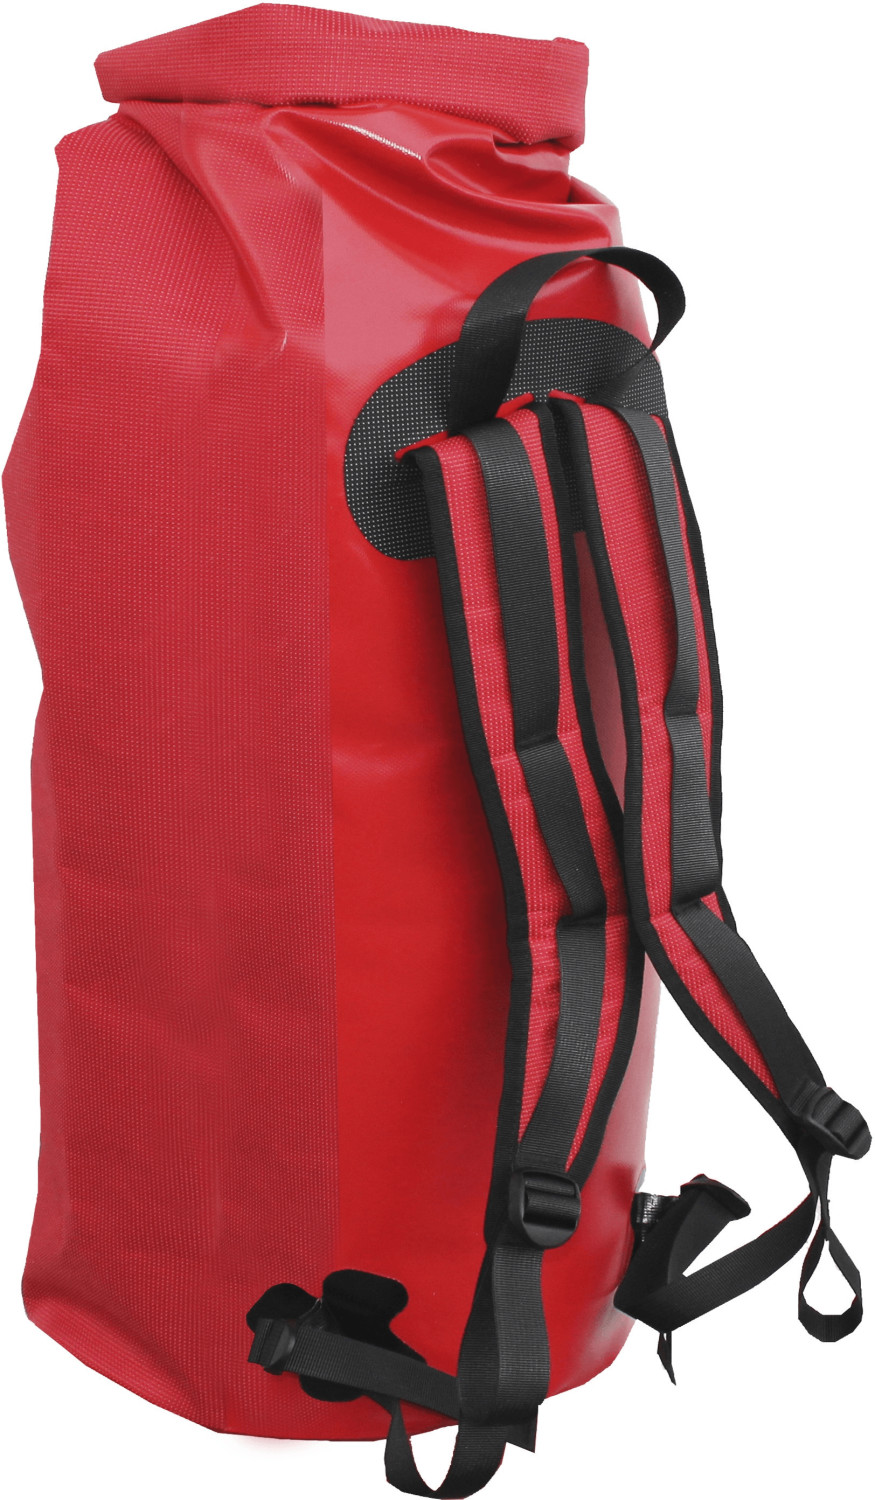 Relags Seesack 90L rot